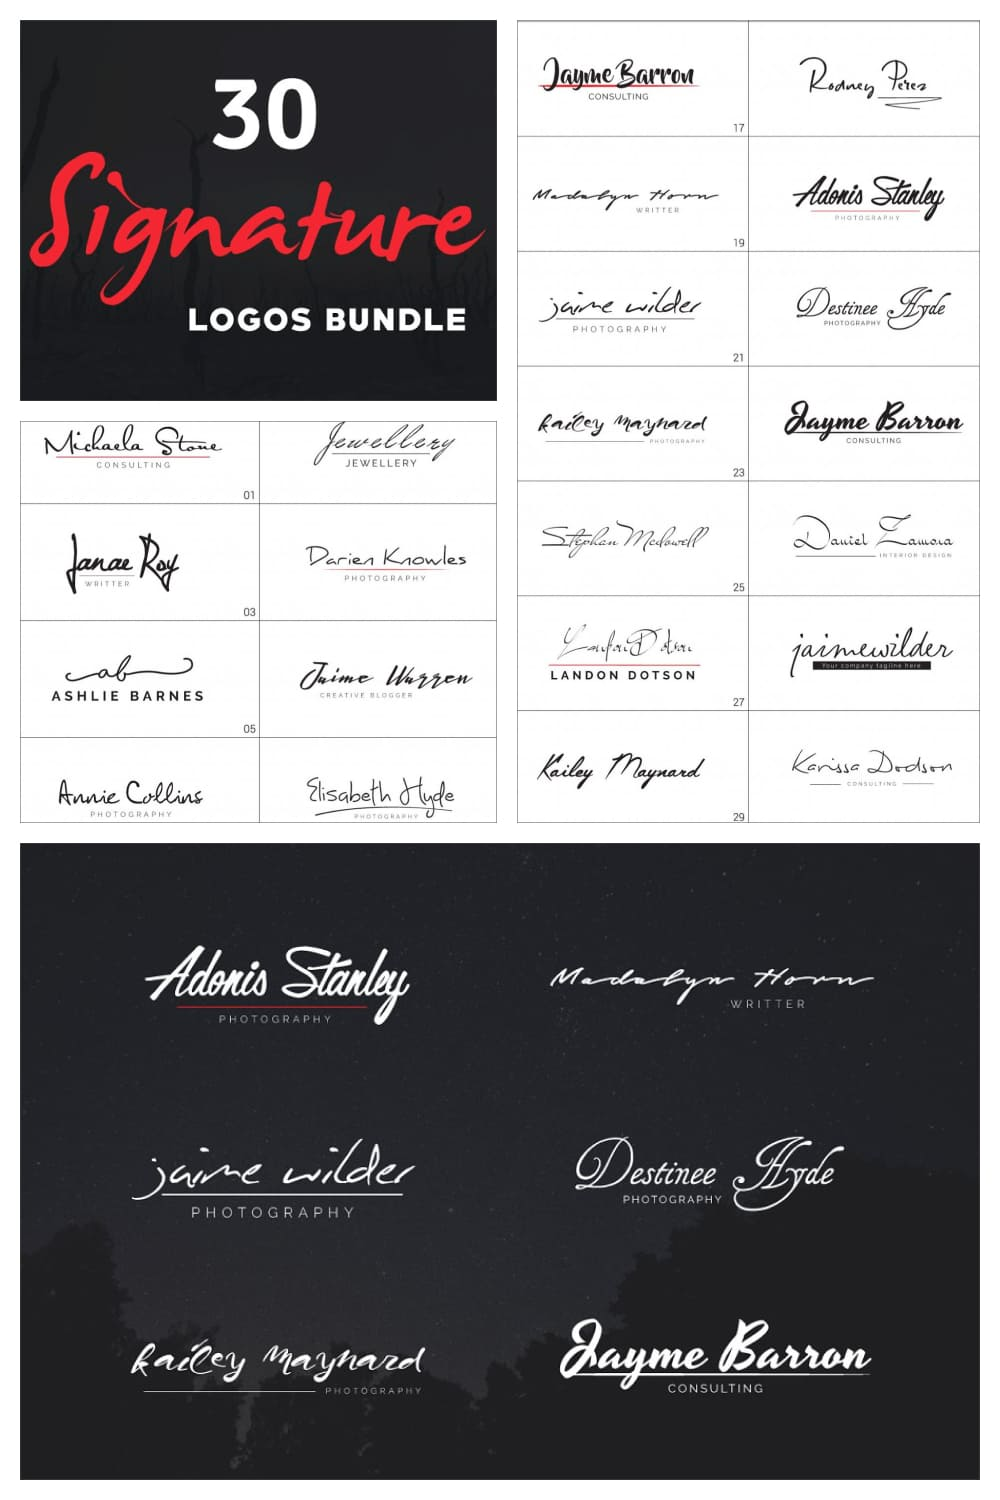 There are two types of logo signatures - white and black.